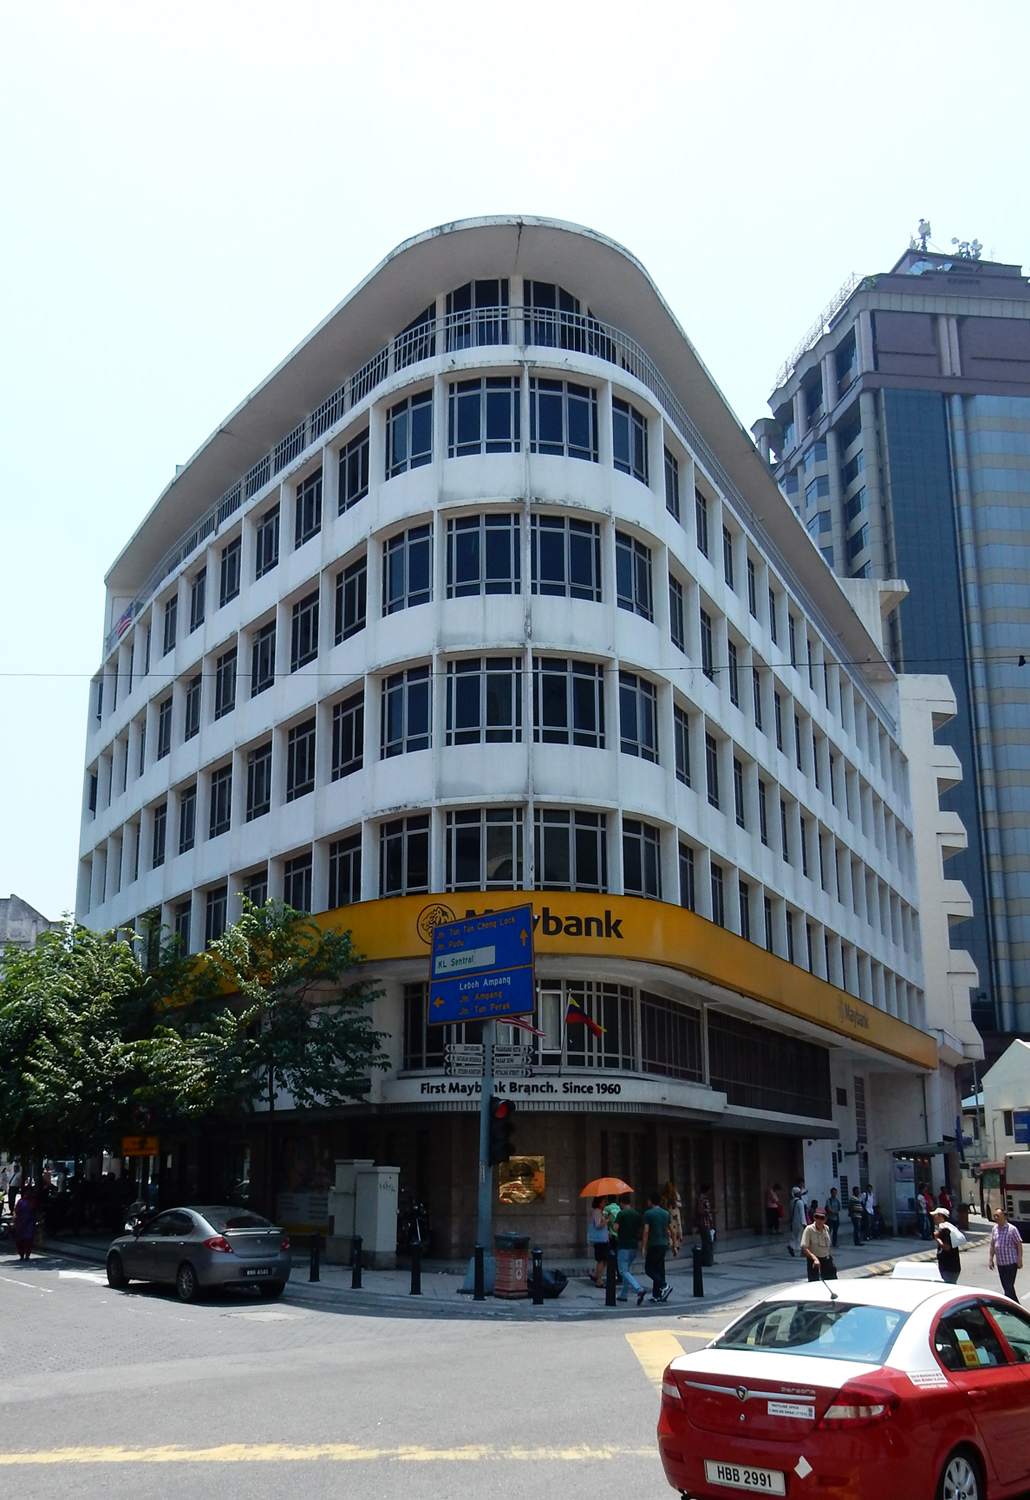 Kuala Lumpur walking tour lonely planet wandel route stad maleisie oldest bank